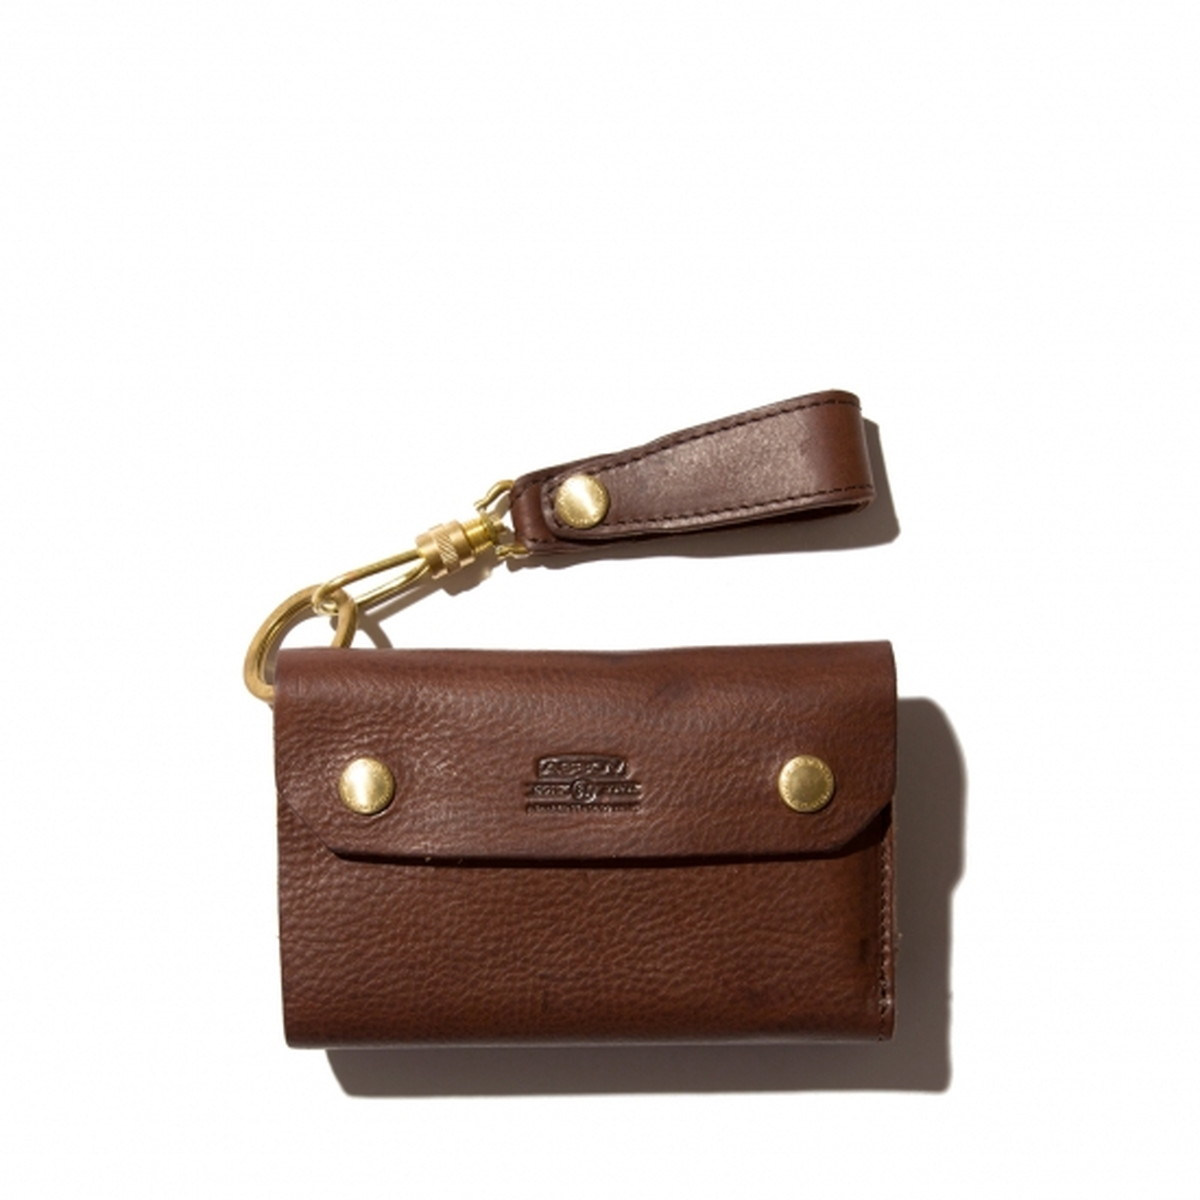 AS2OV (アッソブ) OILED SHRINK LEATHER SHORT WALLET / 折財布 101402